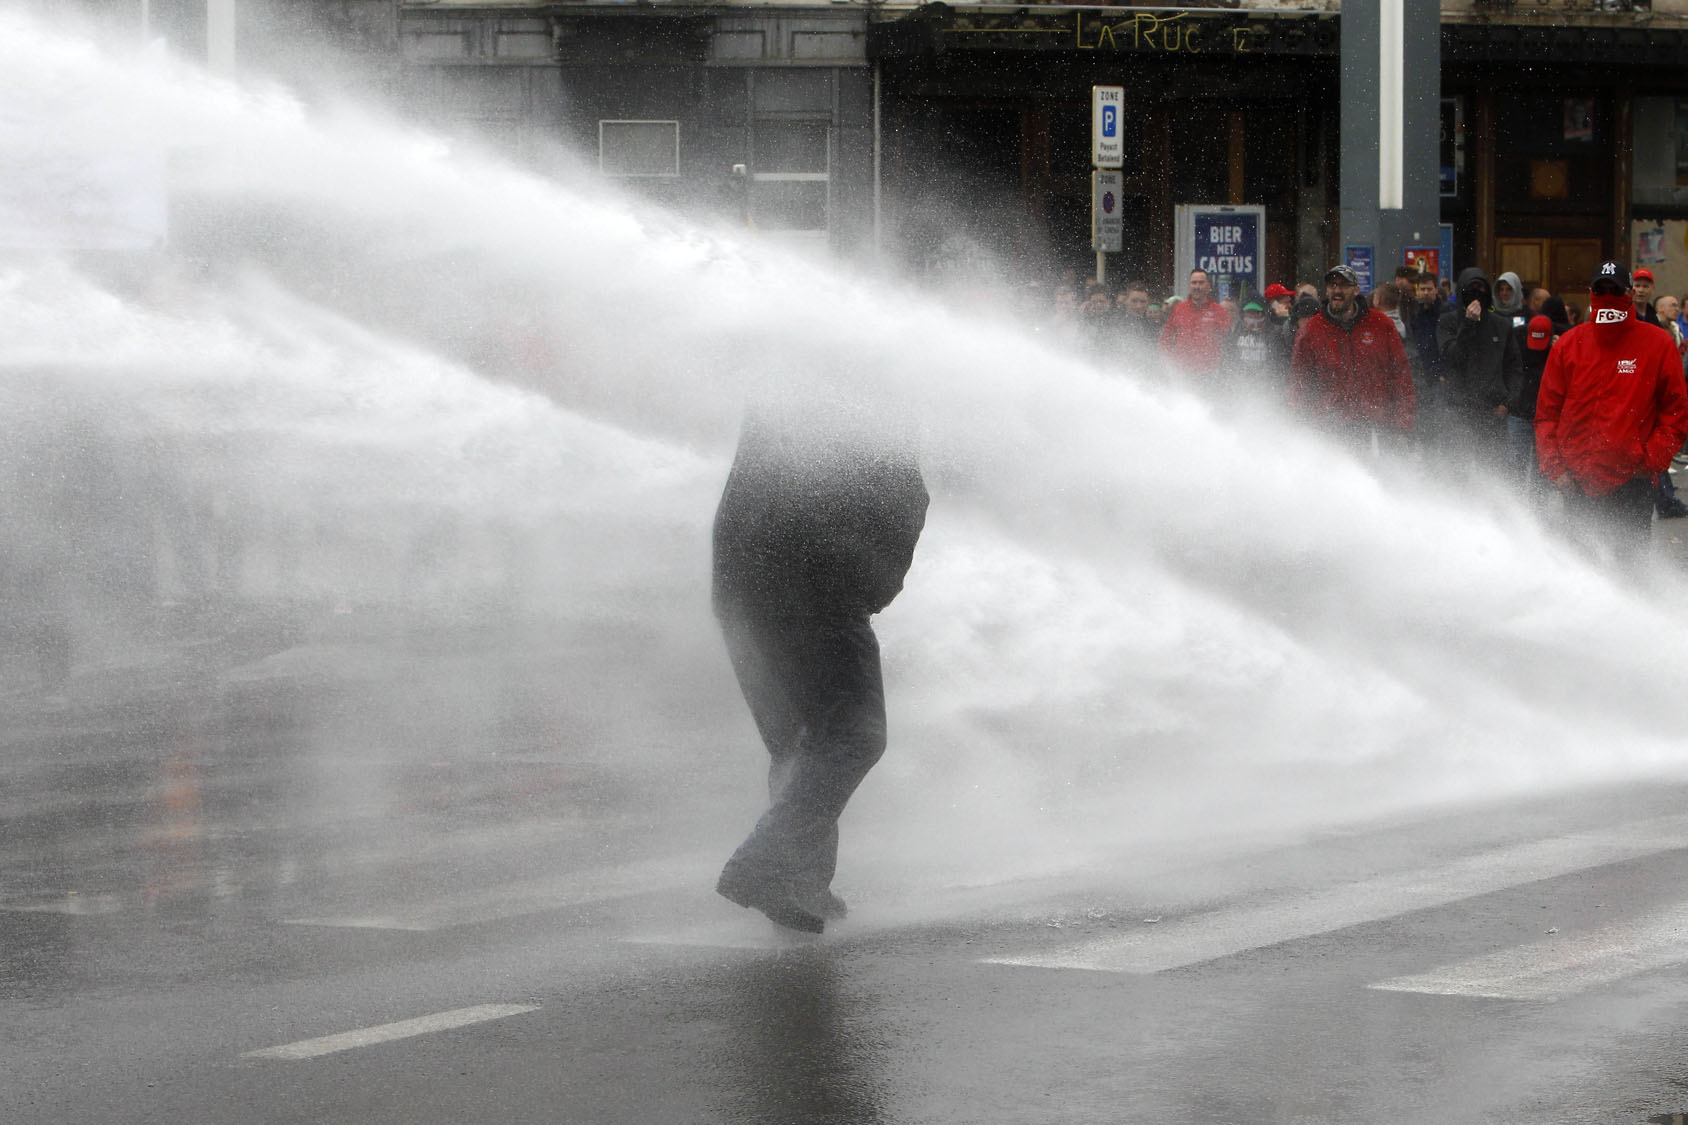 Belgian riot police clash with protesters over working regulations